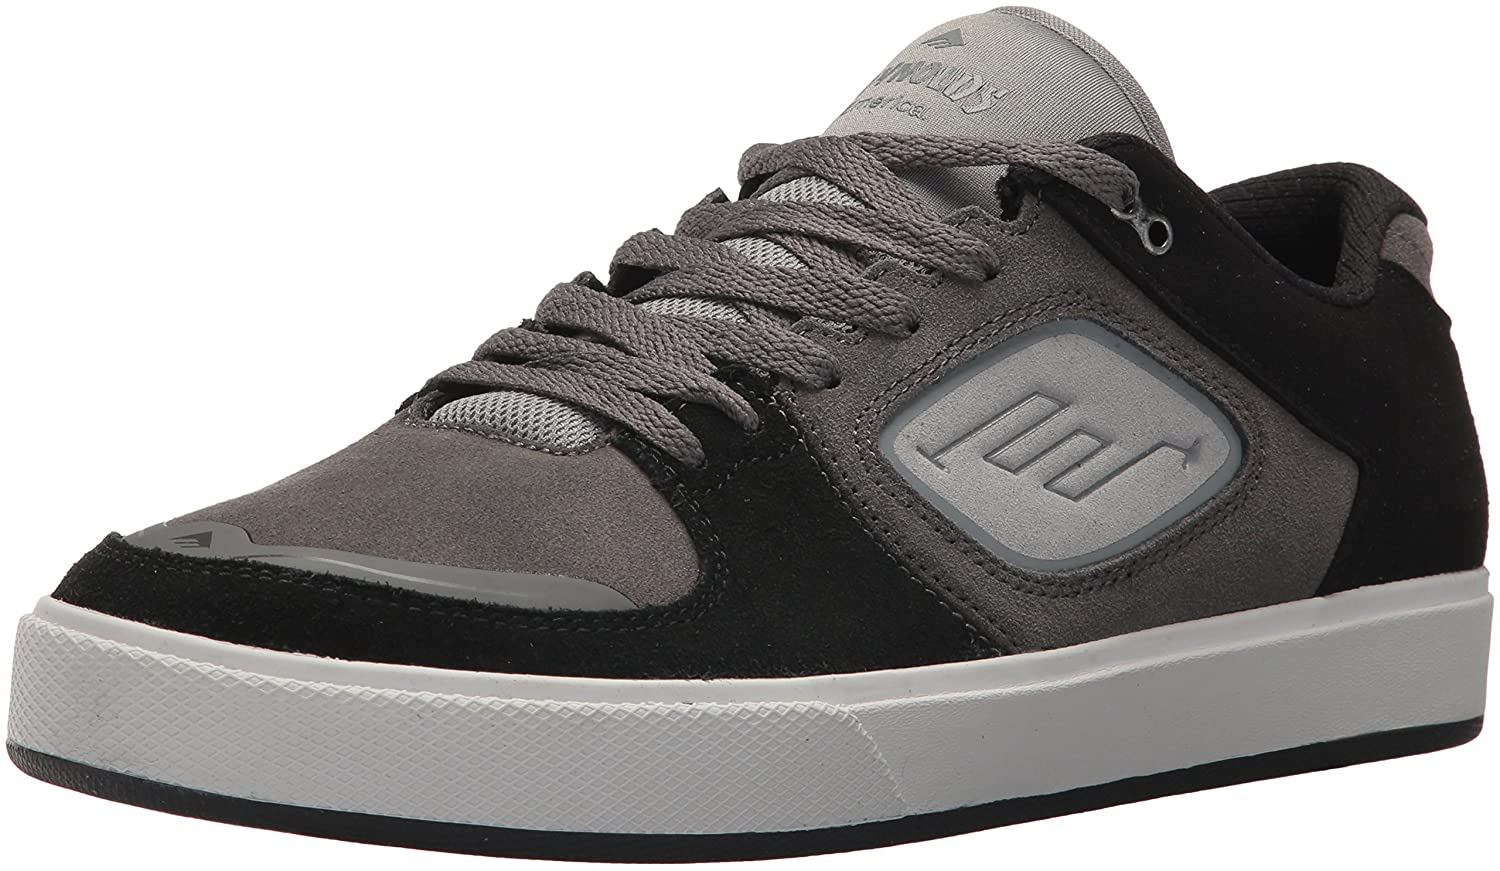 Emerica Men's Reynolds G6 Skate Shoe 13 D(M) US|Black/Grey